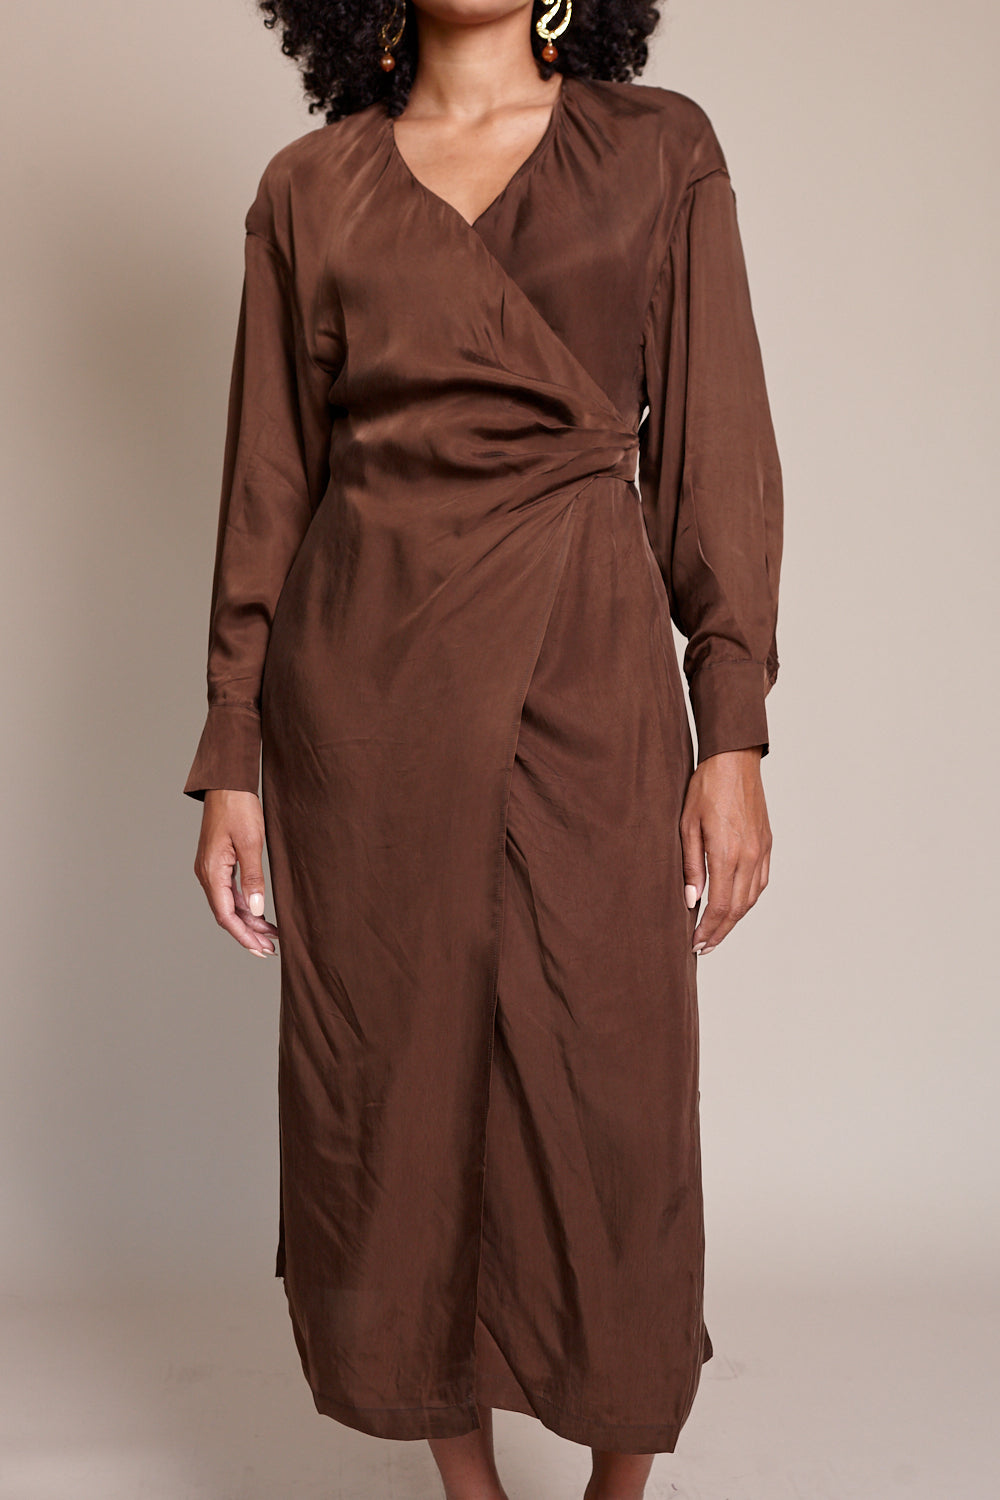 Palermo Dress in Earth